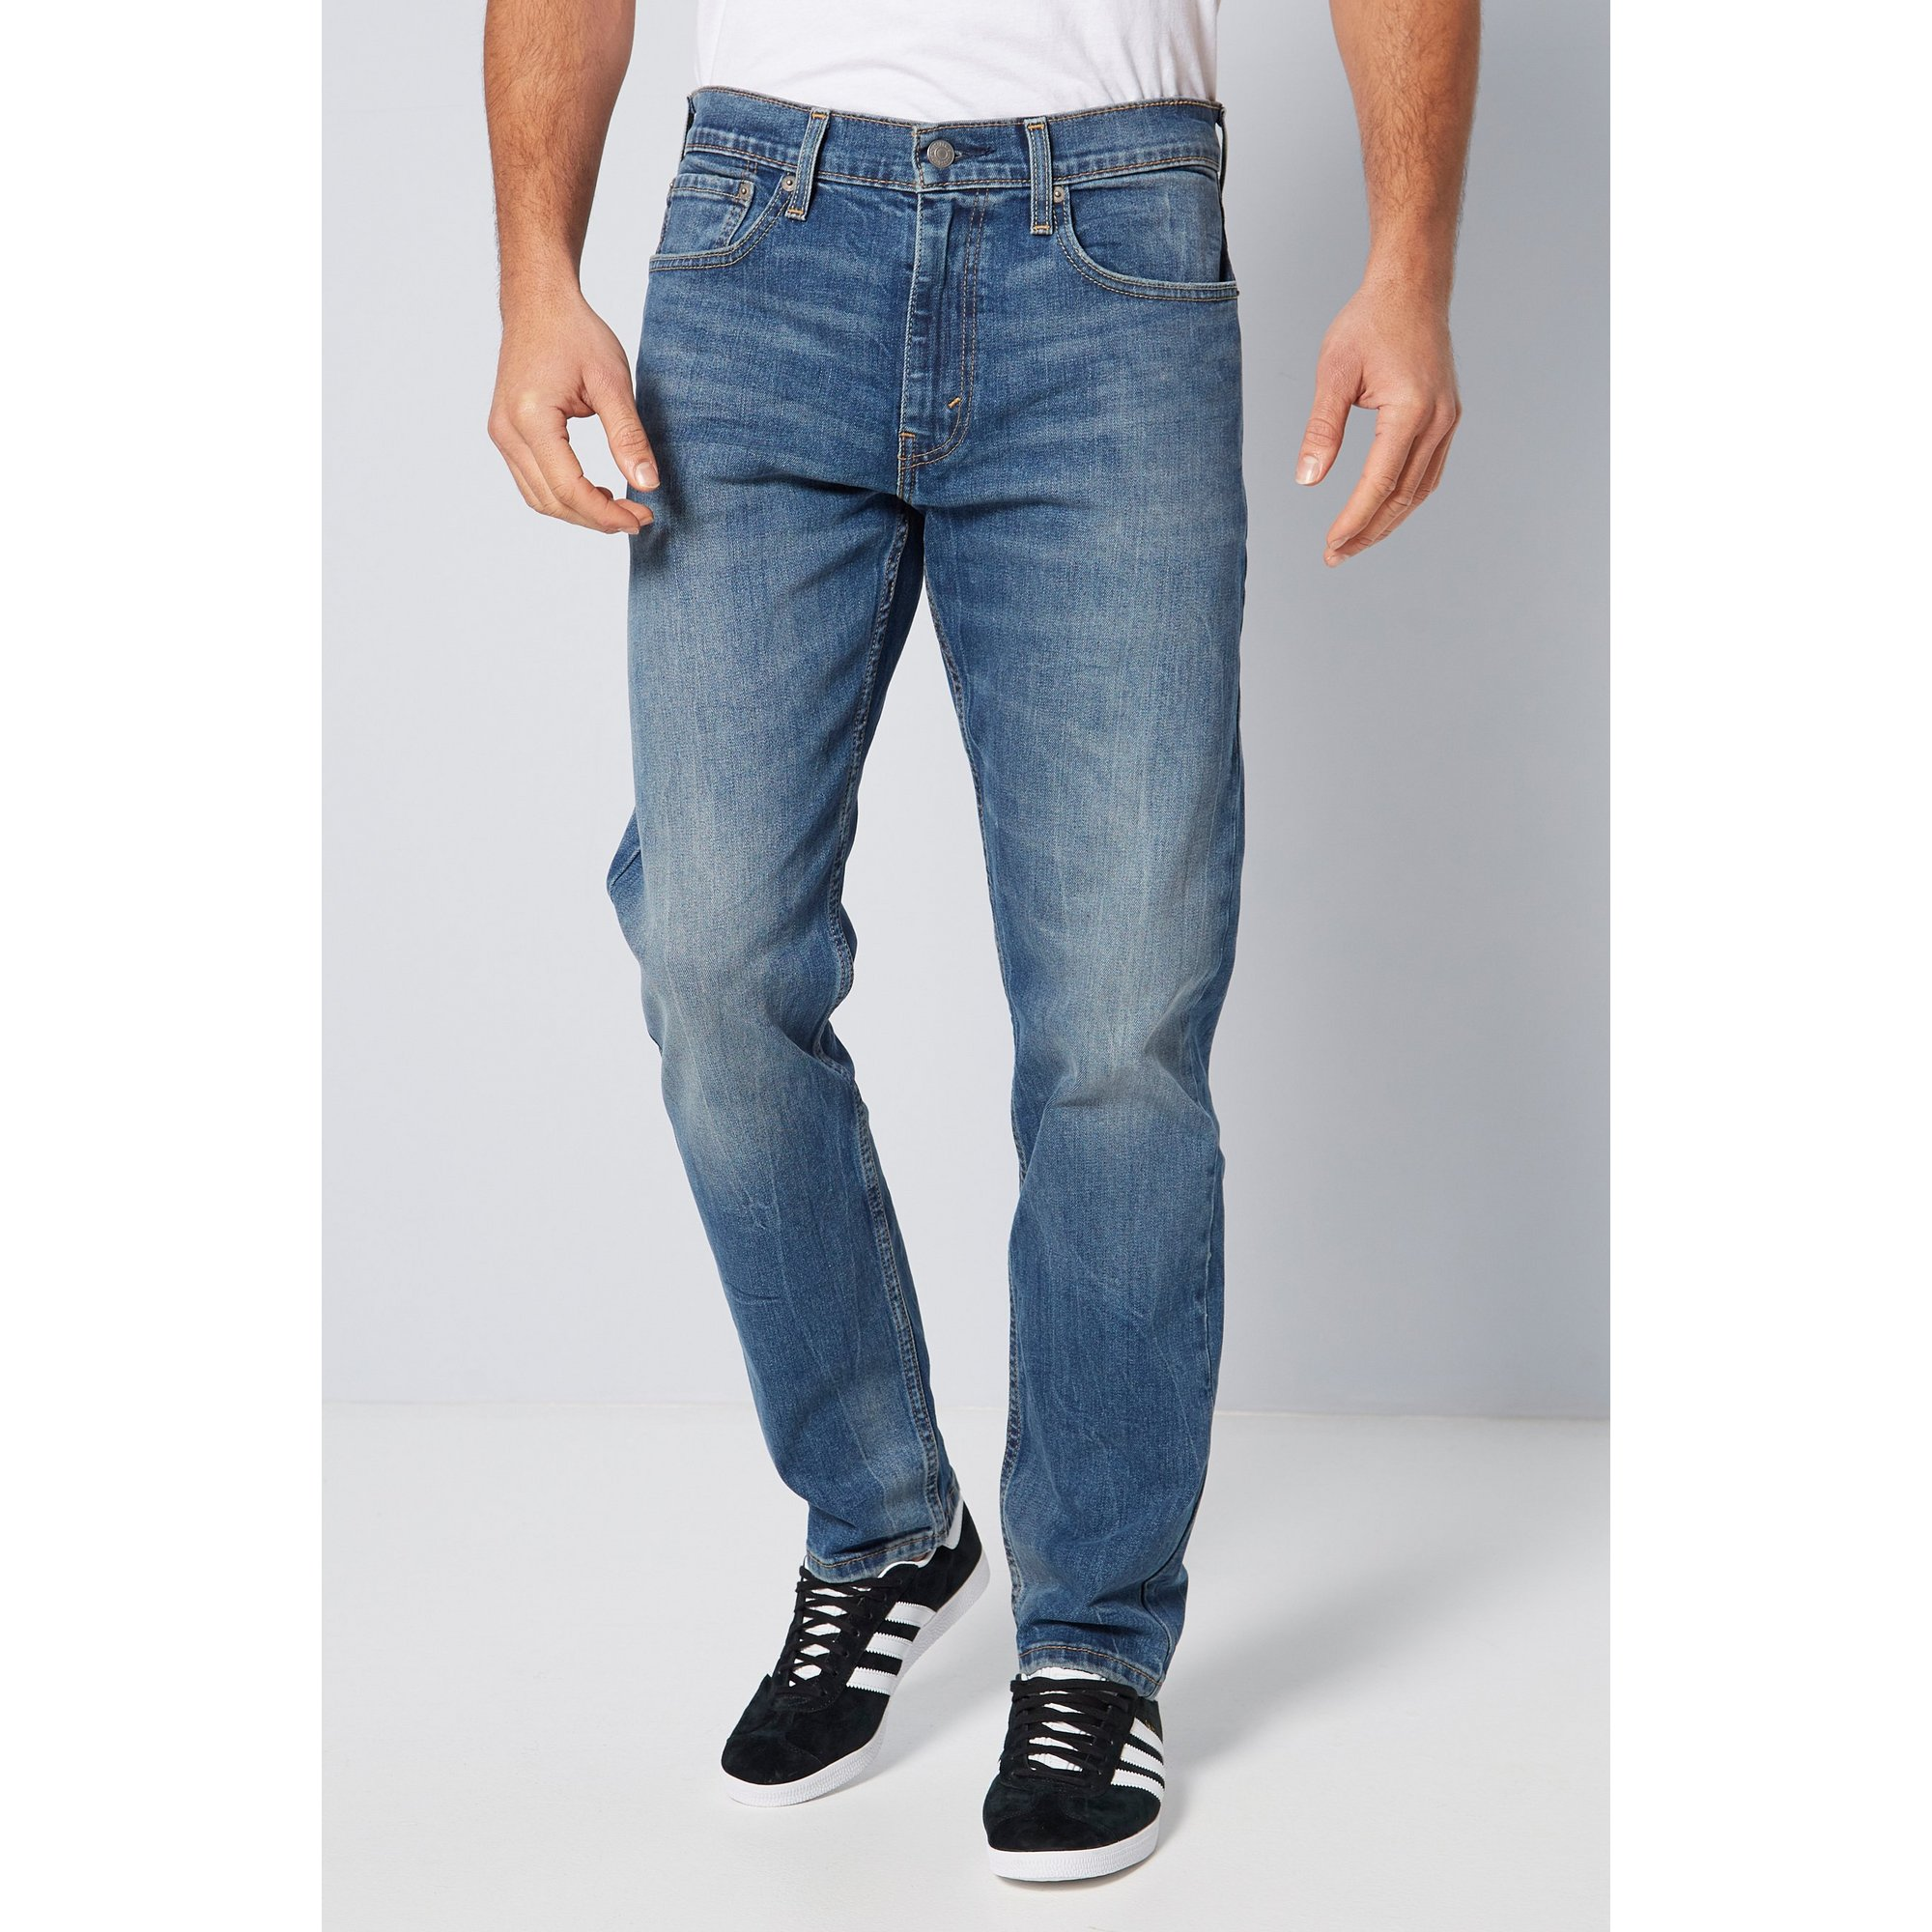 Image of Levis 502 Straight Fit Jeans